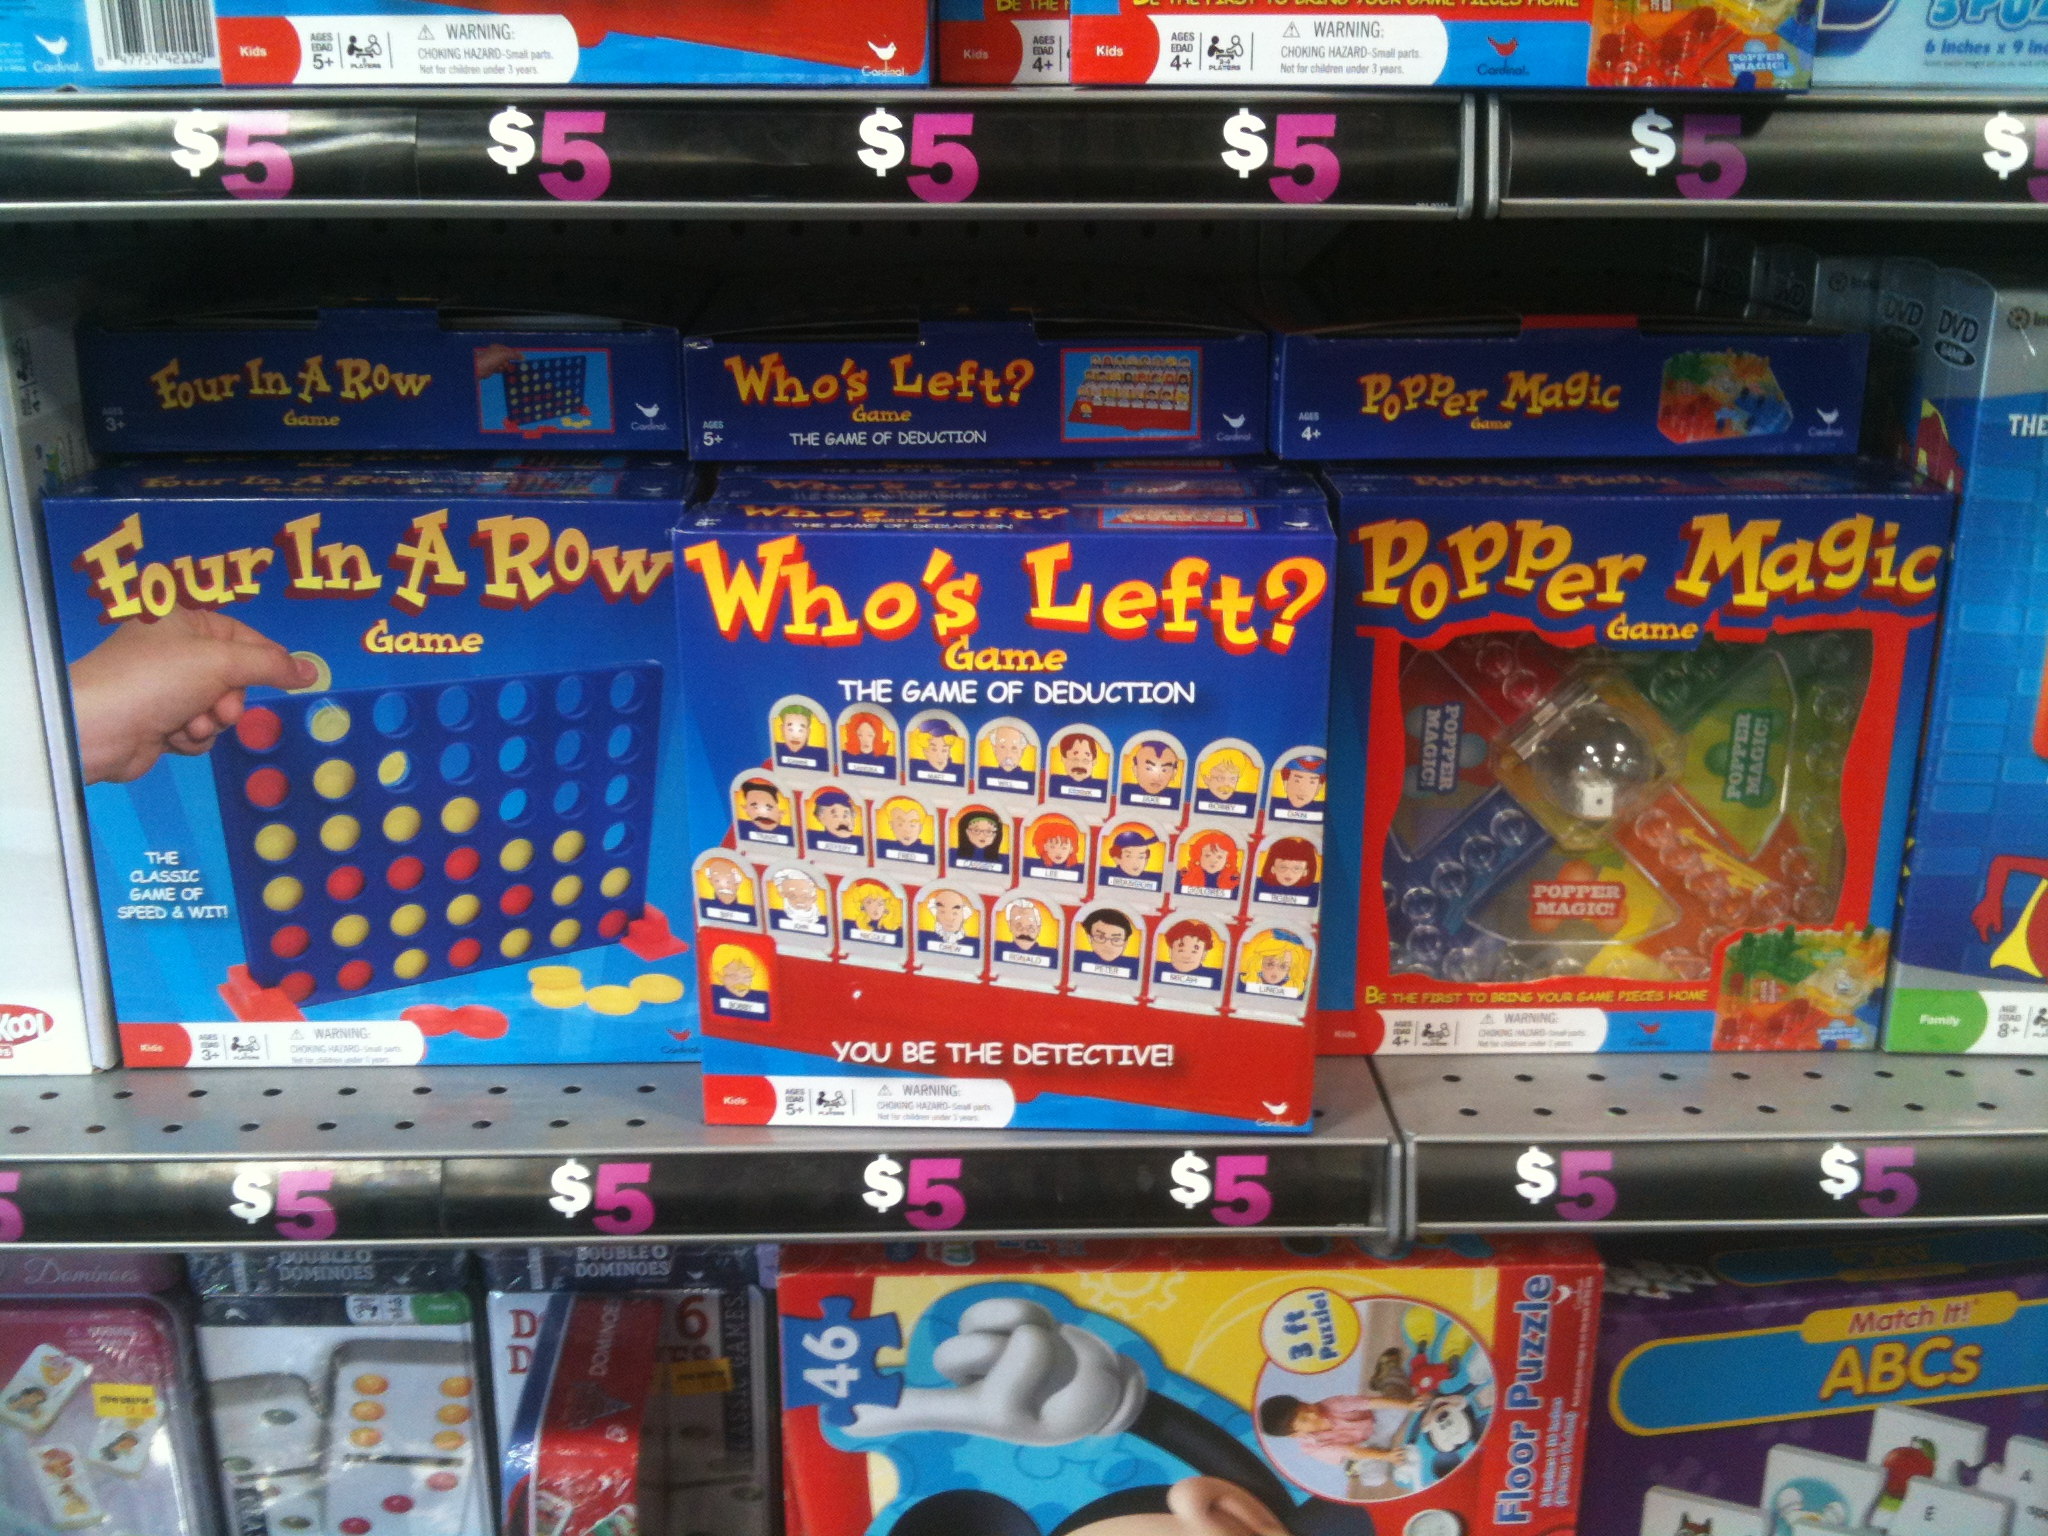 """A shelf of knock-off versions of popular tabletop games, including """"Four in a Row"""" (Connect 4), """"Who's Left?"""" (Guess Who?), and """"Popper Magic"""" (Trouble)."""